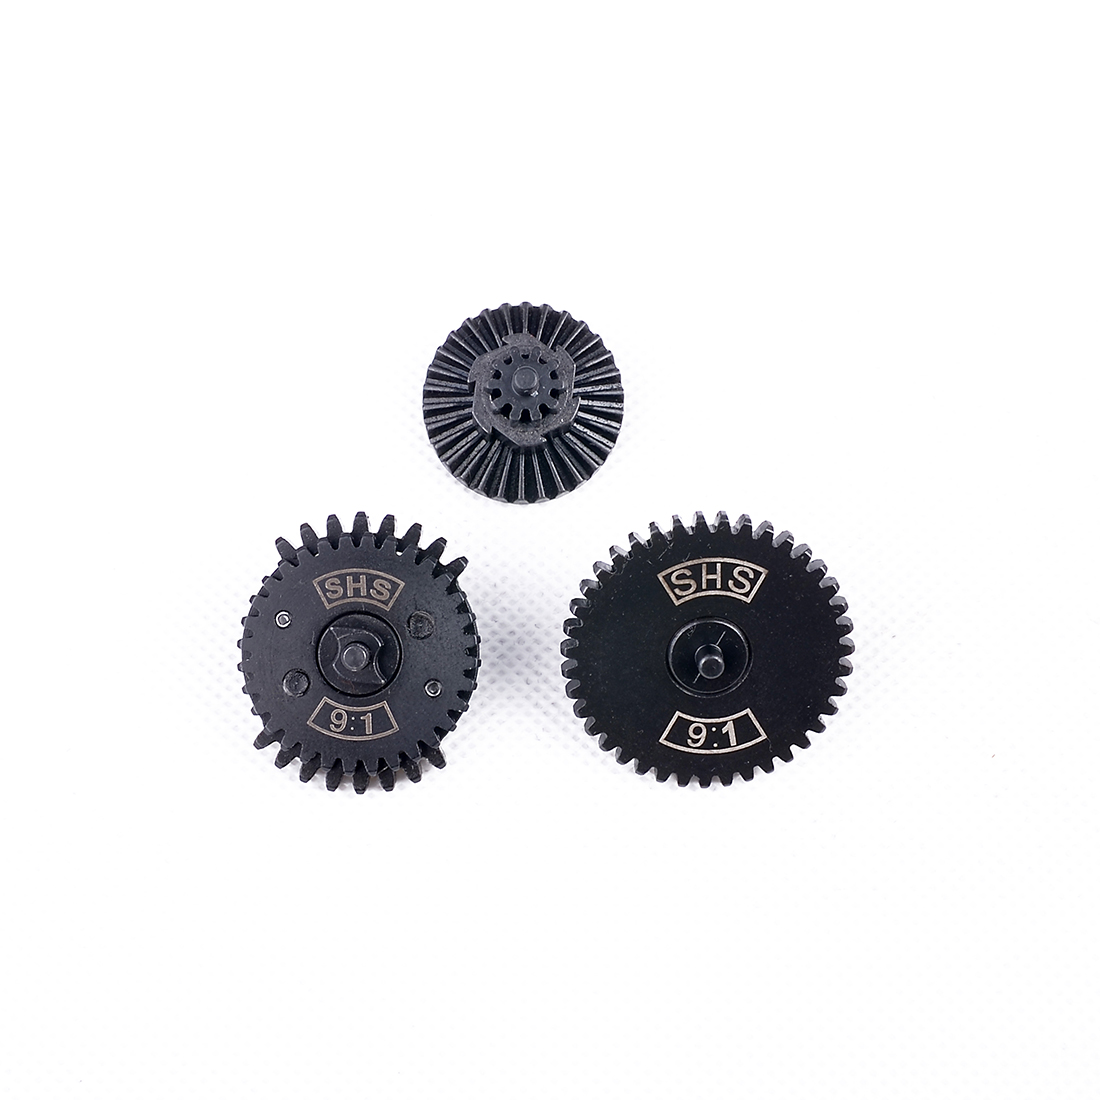 Droppship SHS / FB 9:1/ 13:1/16:1/32:1 High Speed Dual Sector Gear Set For FB / JM Gen.8 / JM Gen.9 Gearbox - Black